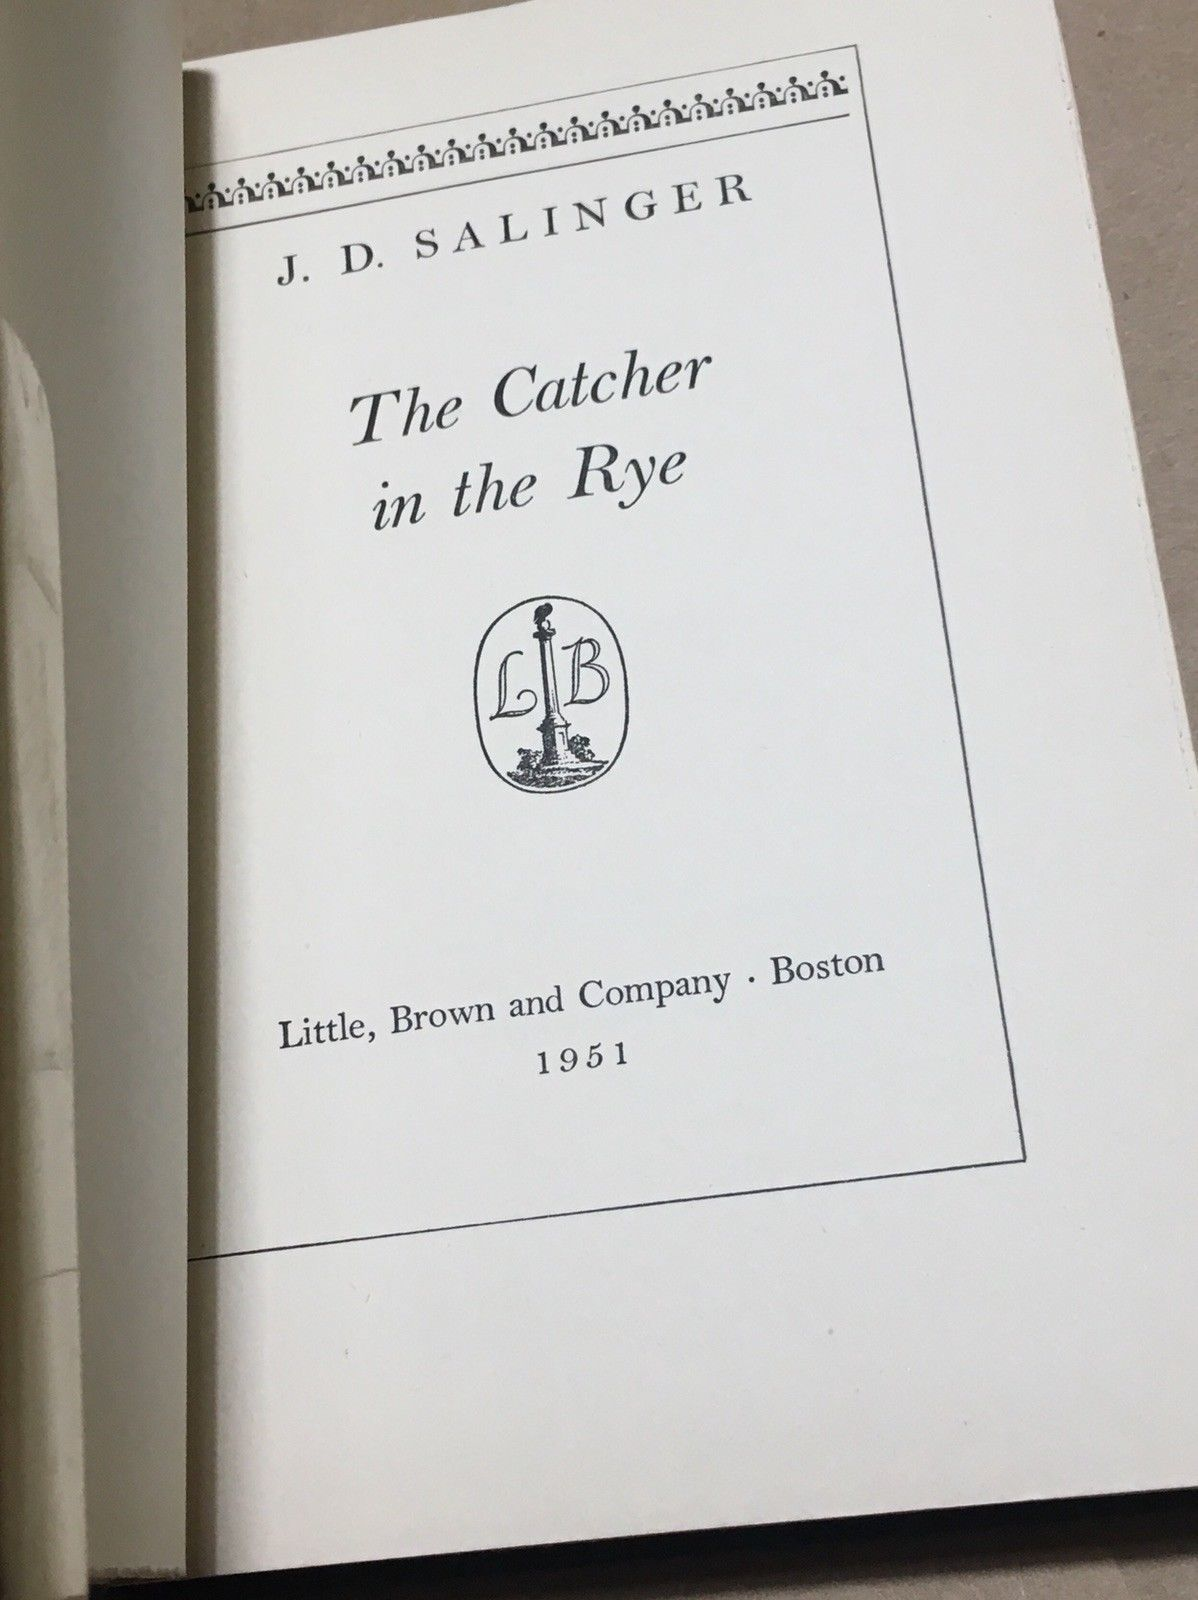 The Catcher In the Rye - J. D. Salinger - 1951 Fine in fine Original dust jacket